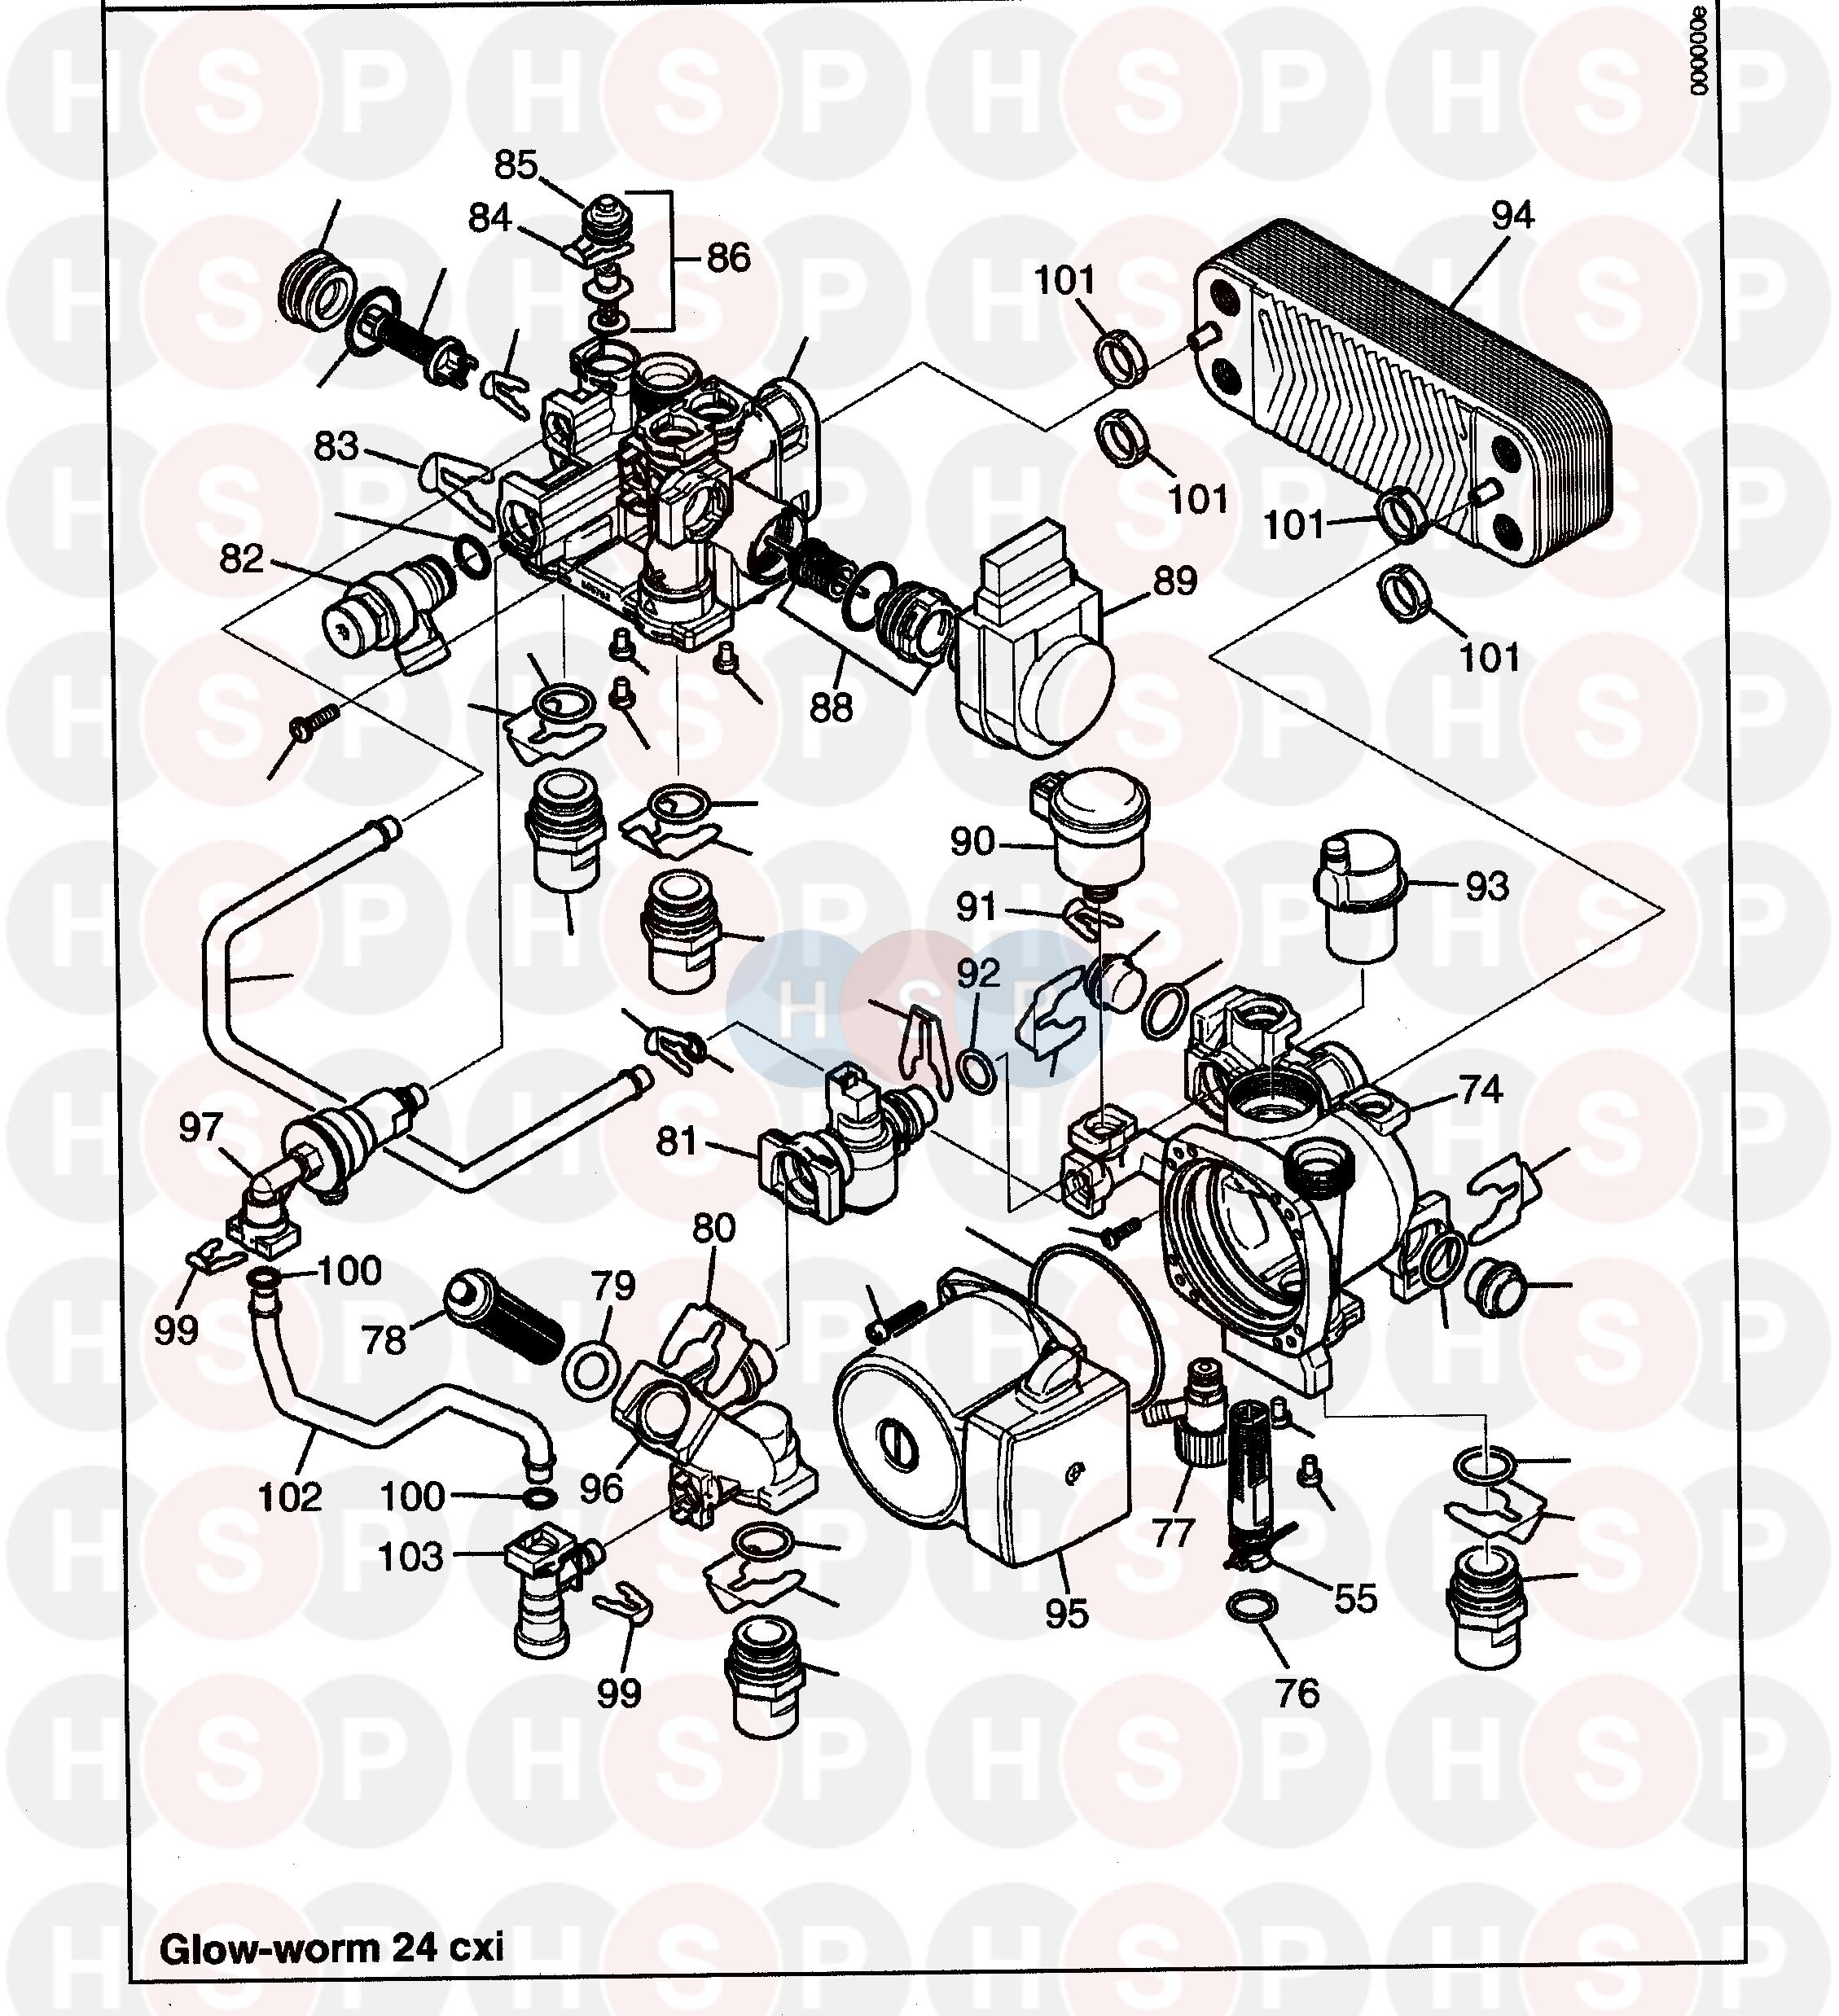 Glowworm GLOWWORM 38CXI (Pump) Diagram | Heating Spare Parts